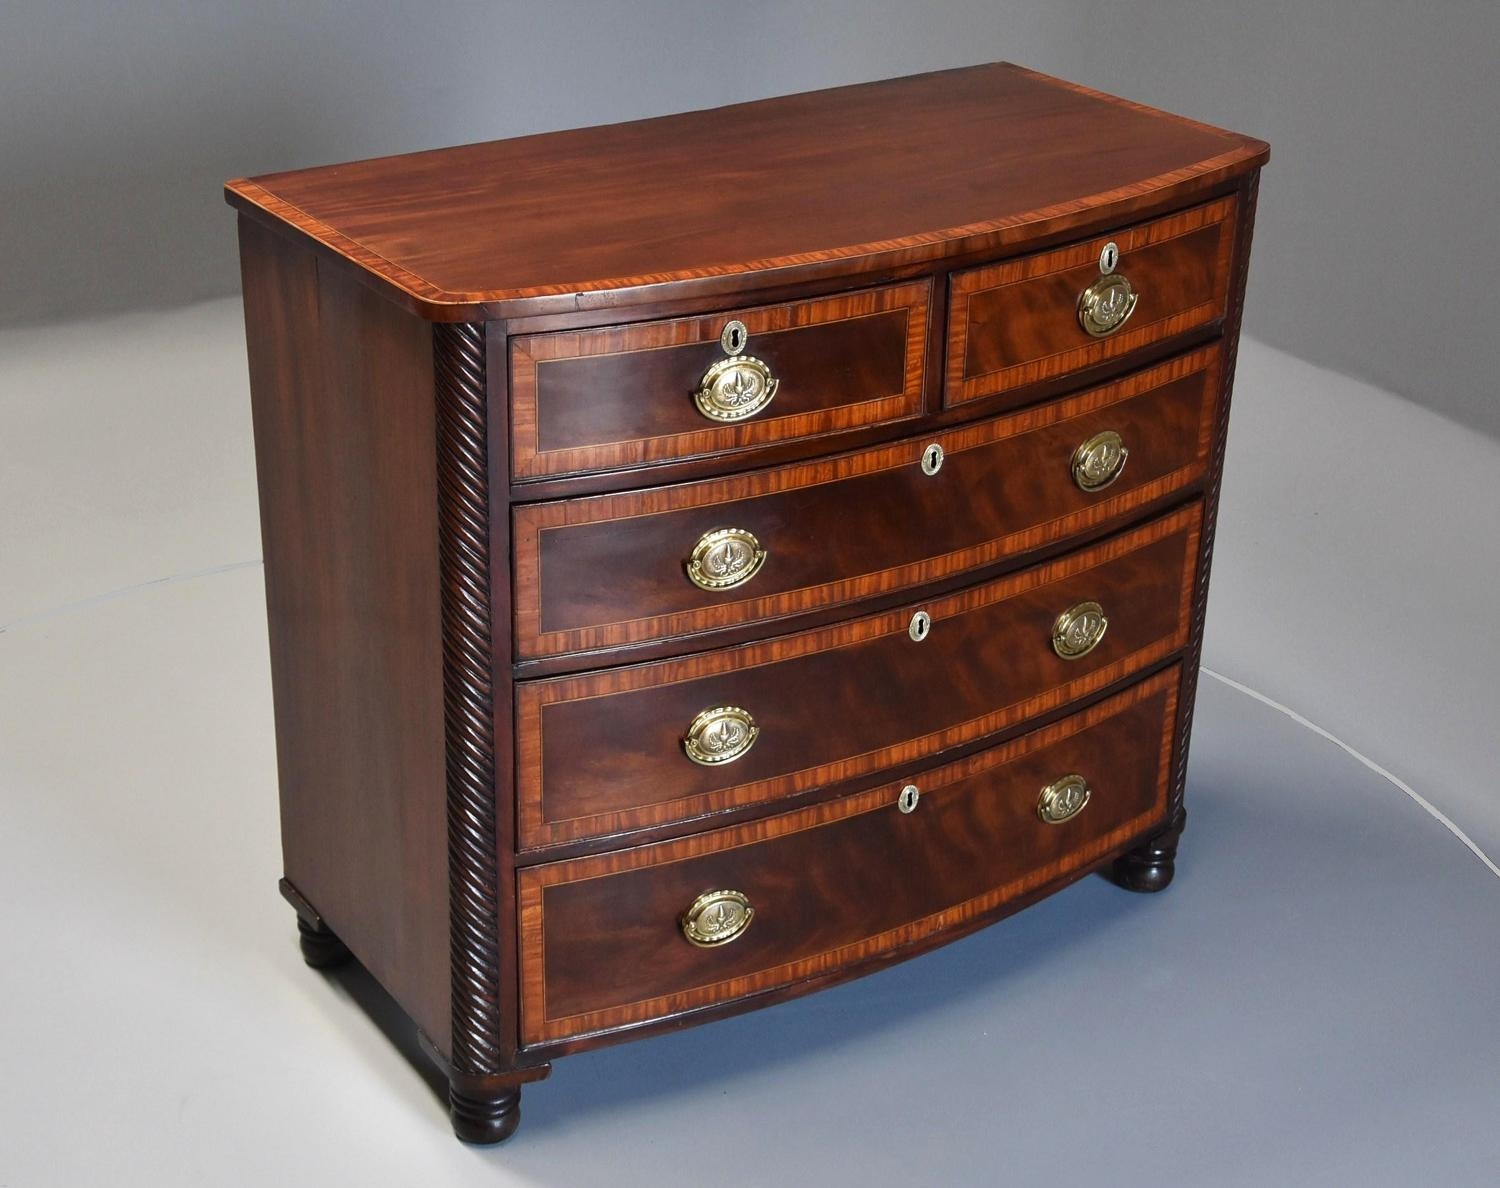 Mahogany & satinwood banded chest of drawers